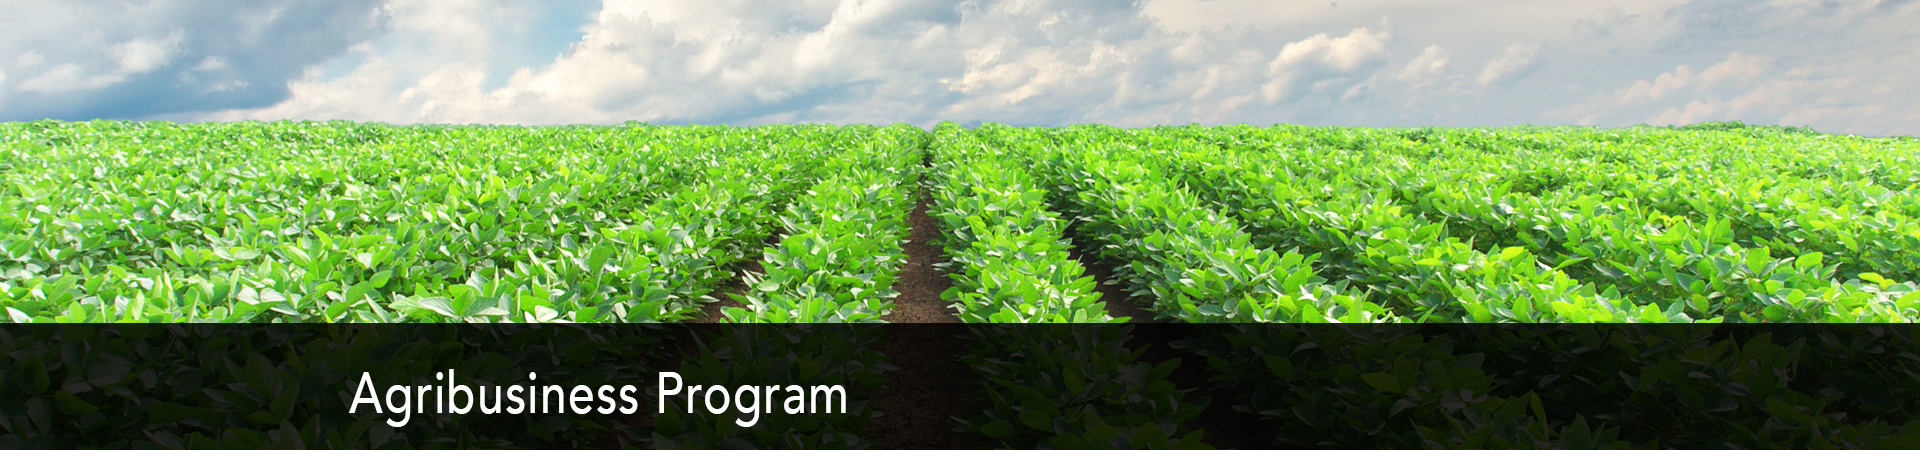 Explore the Agribusiness Program at NC